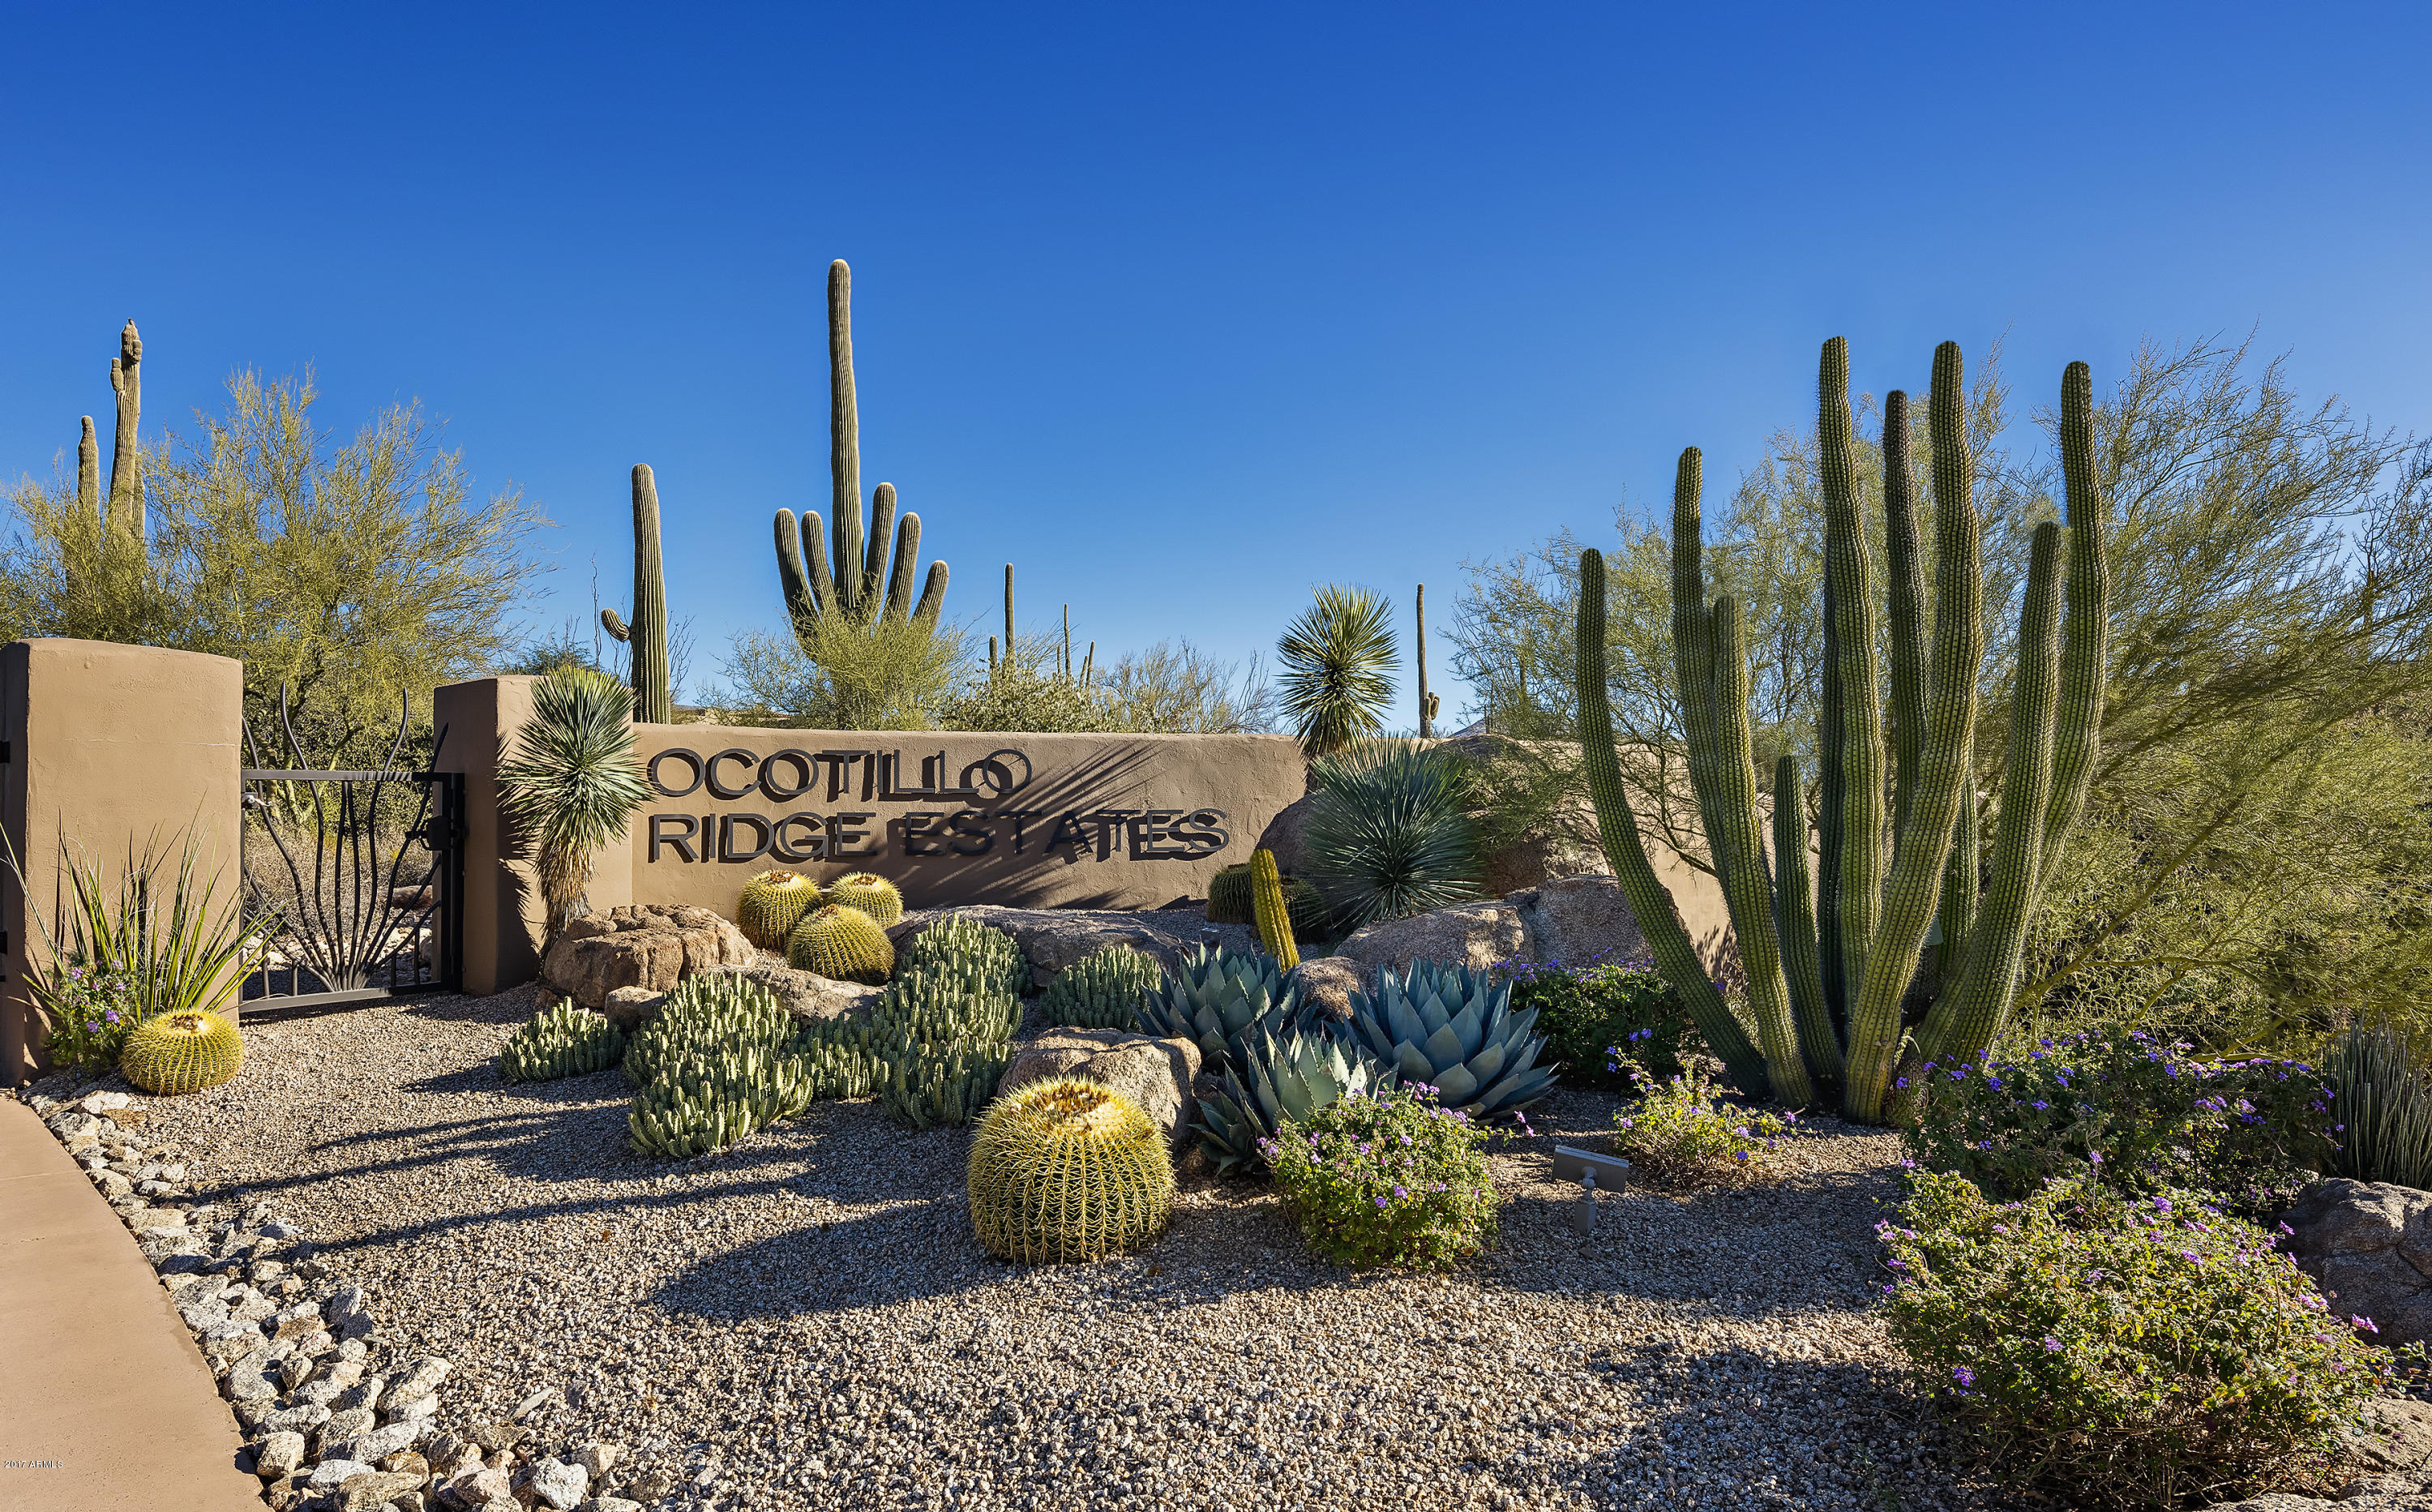 MLS 5707327 39601 N OCOTILLO RIDGE Drive, Carefree, AZ 85377 Carefree AZ Mountain View